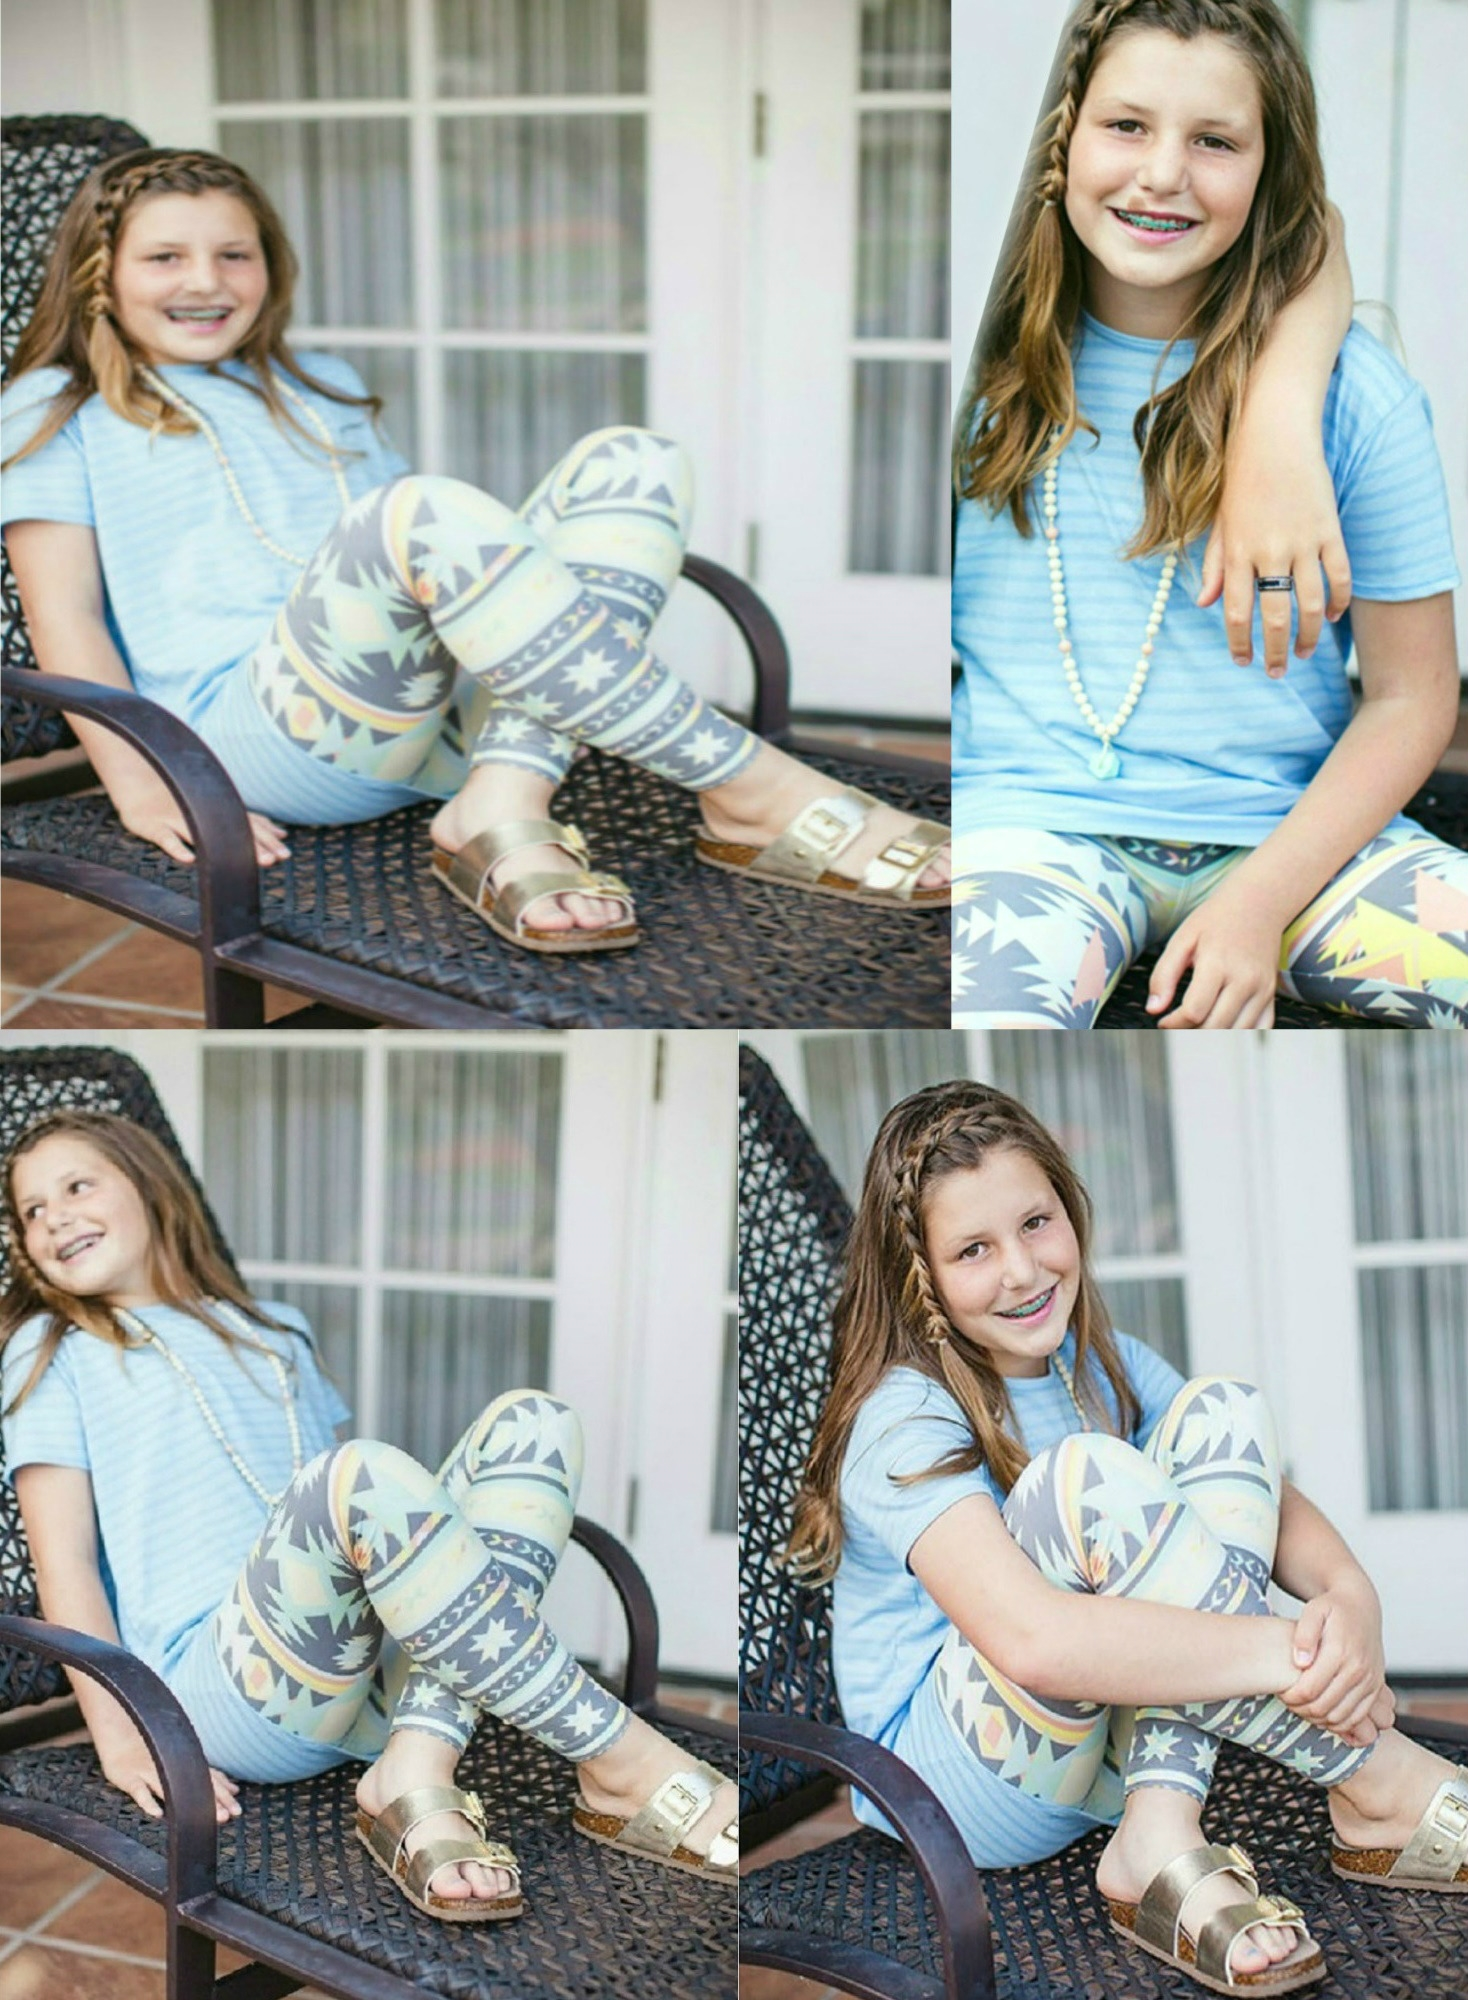 Cute Young Girl Smiling With Lularoe Leggings